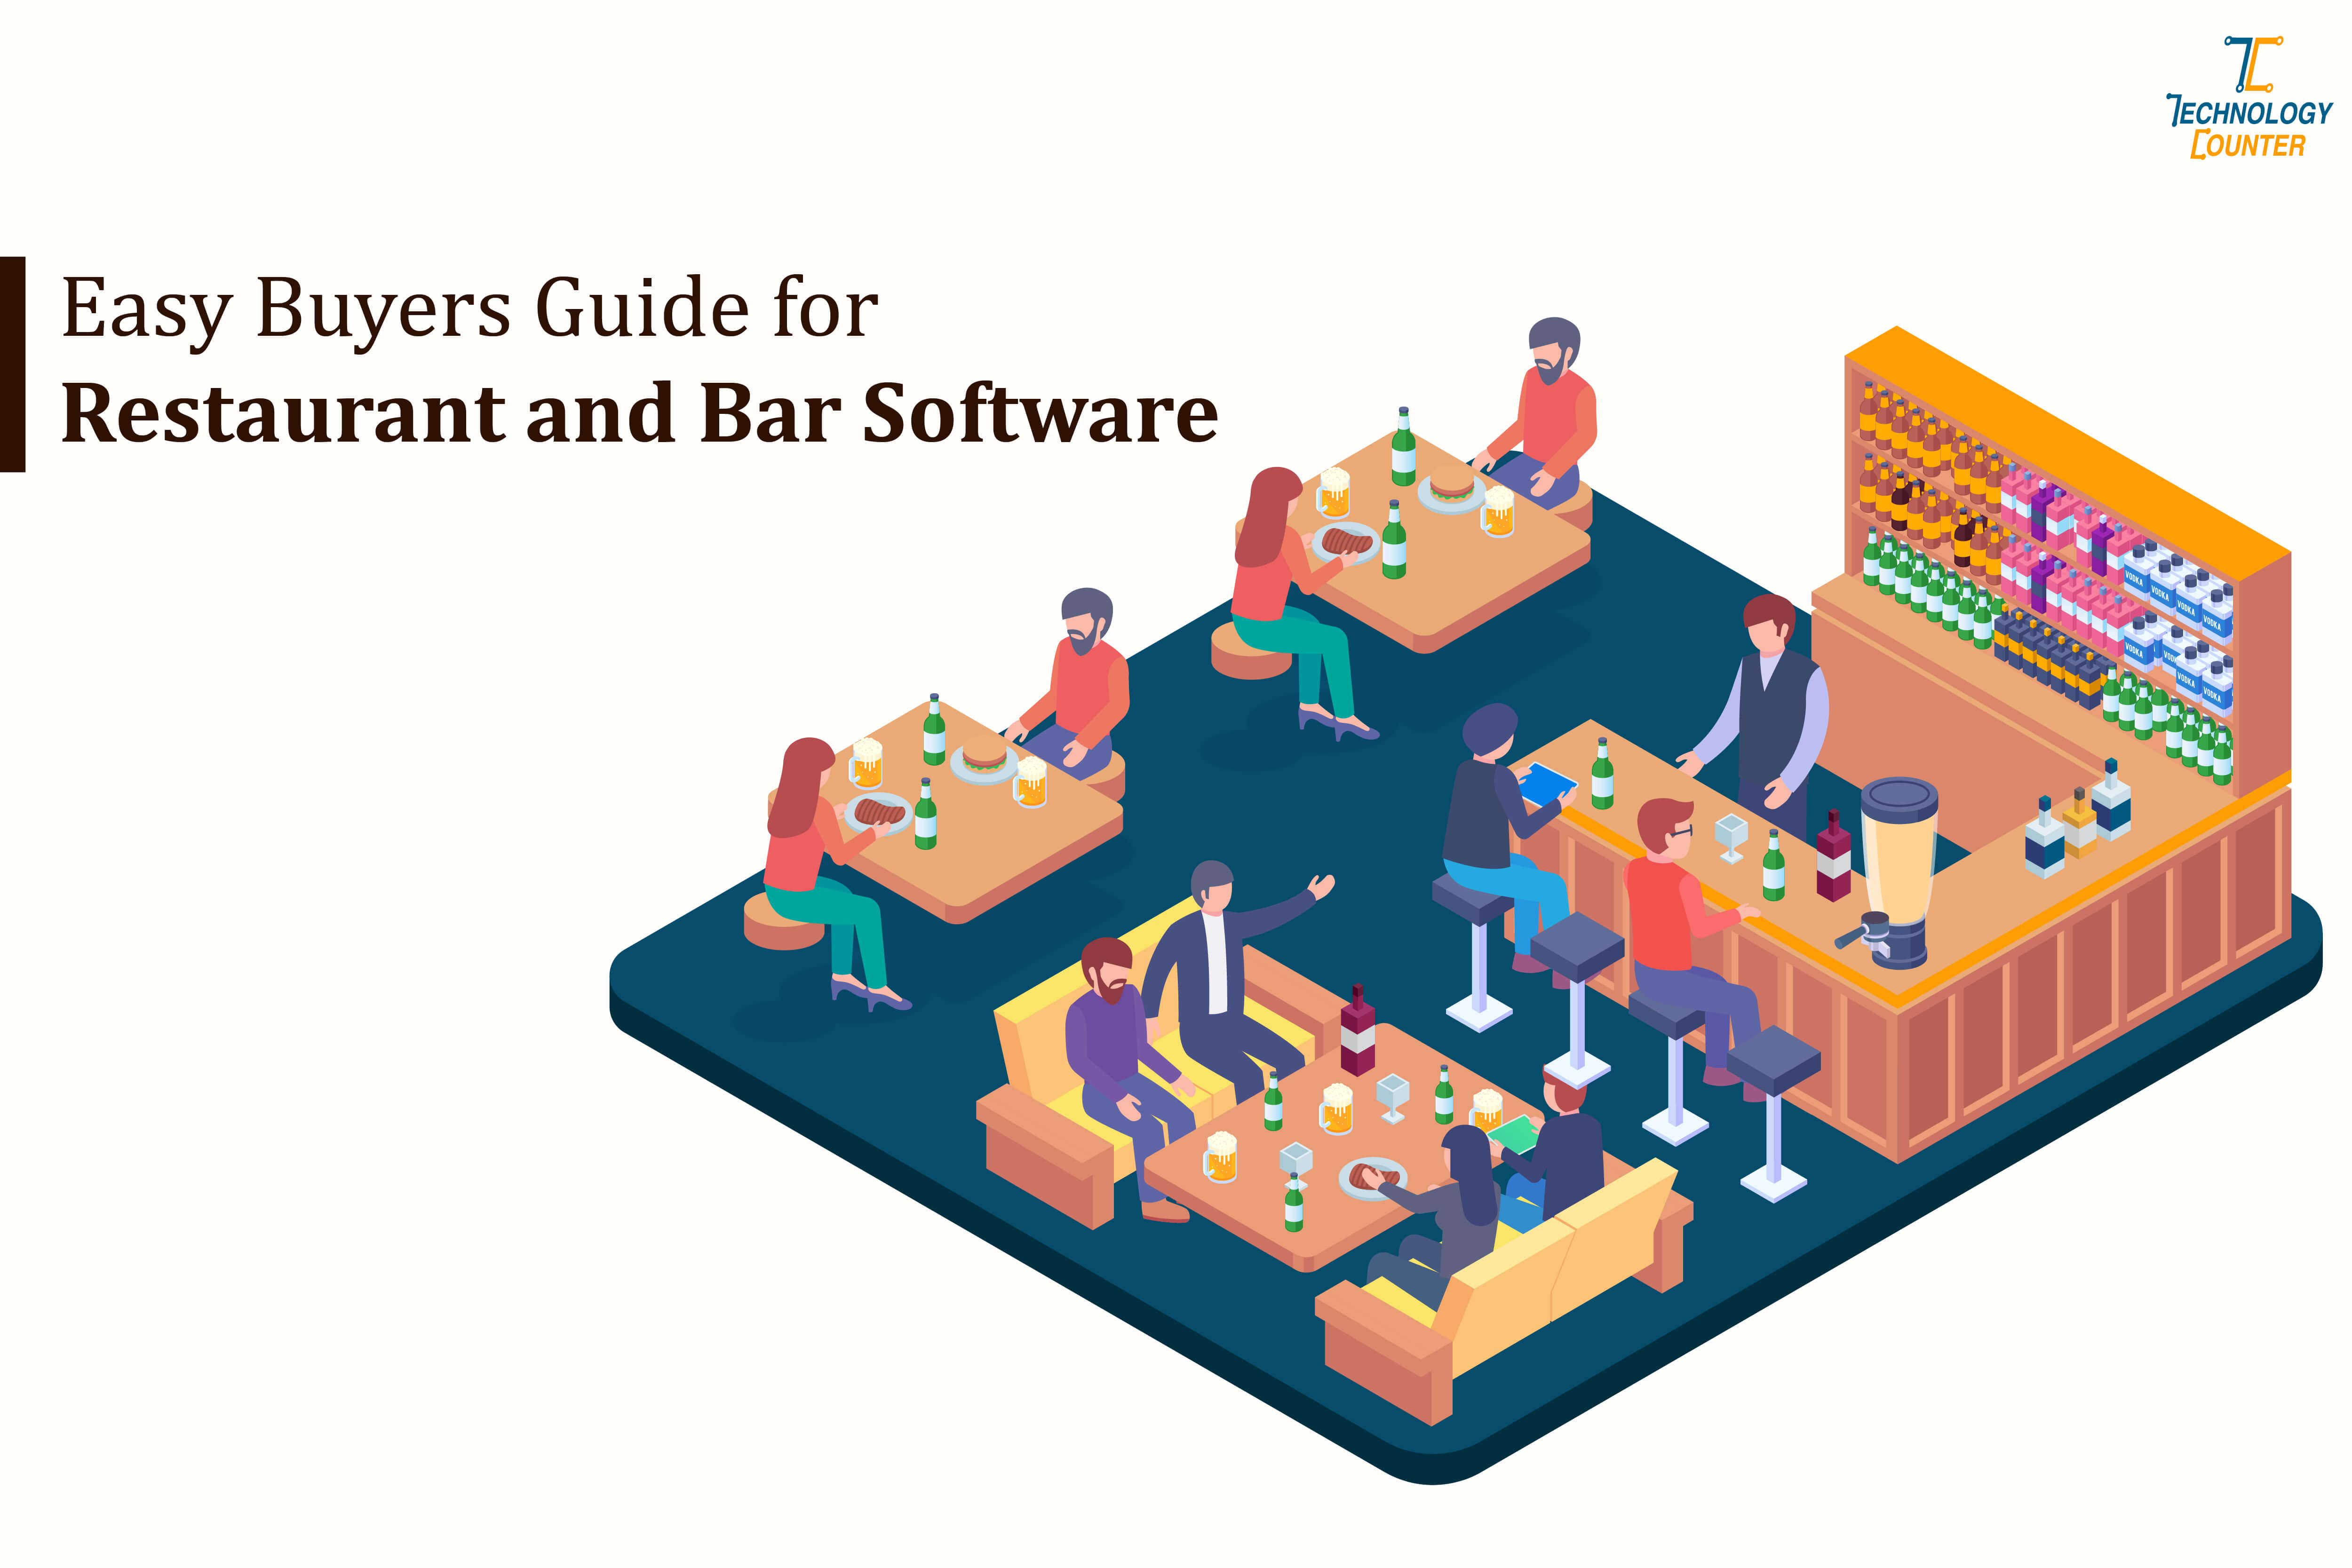 Easy buyers guide for Restaurant and Bar Software